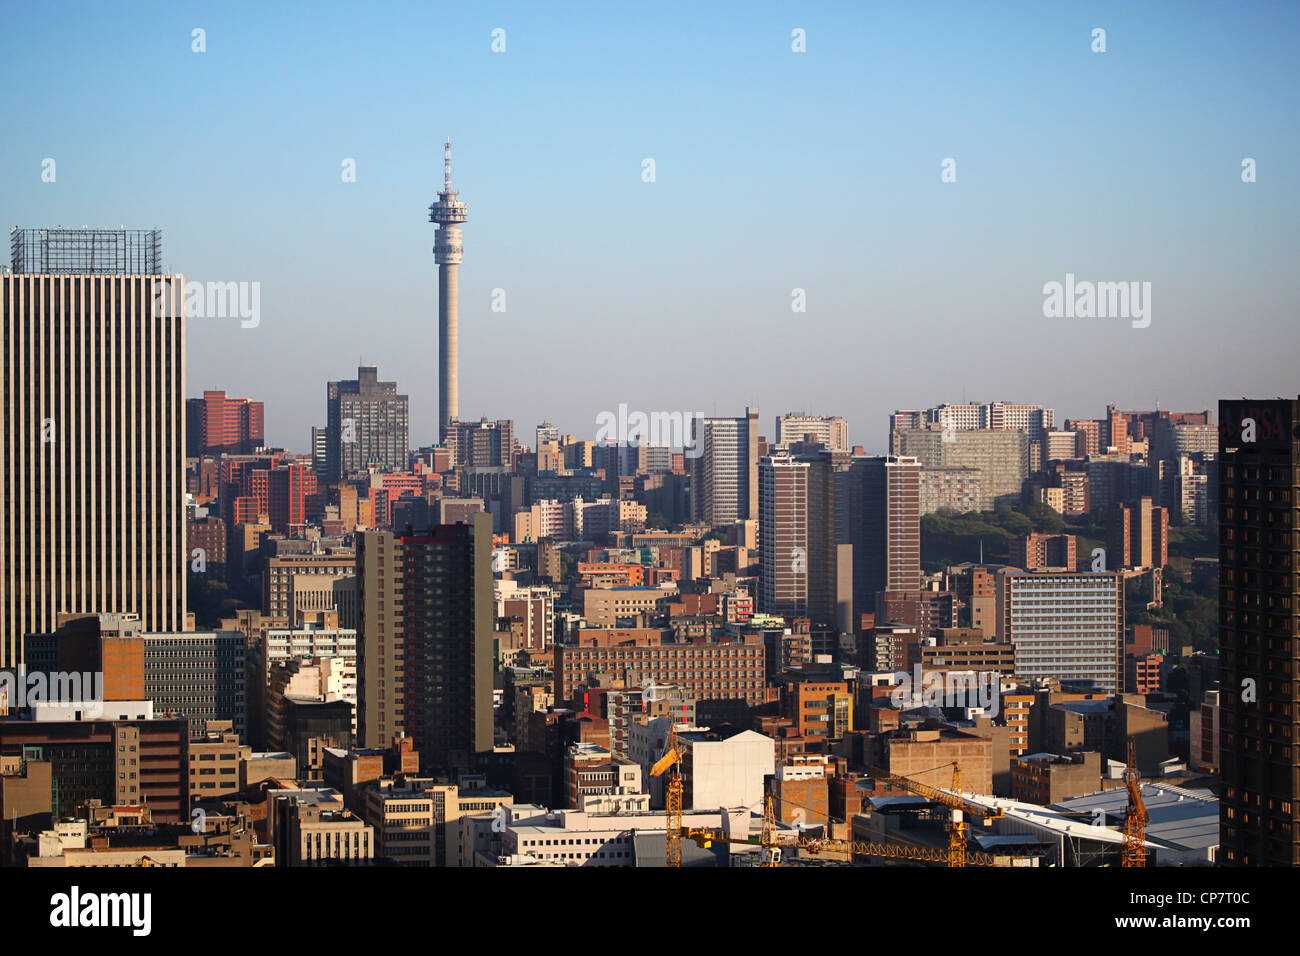 Johannesburg skyline and hillbrow tower stock photo 48115660 alamy johannesburg skyline and hillbrow tower thecheapjerseys Images